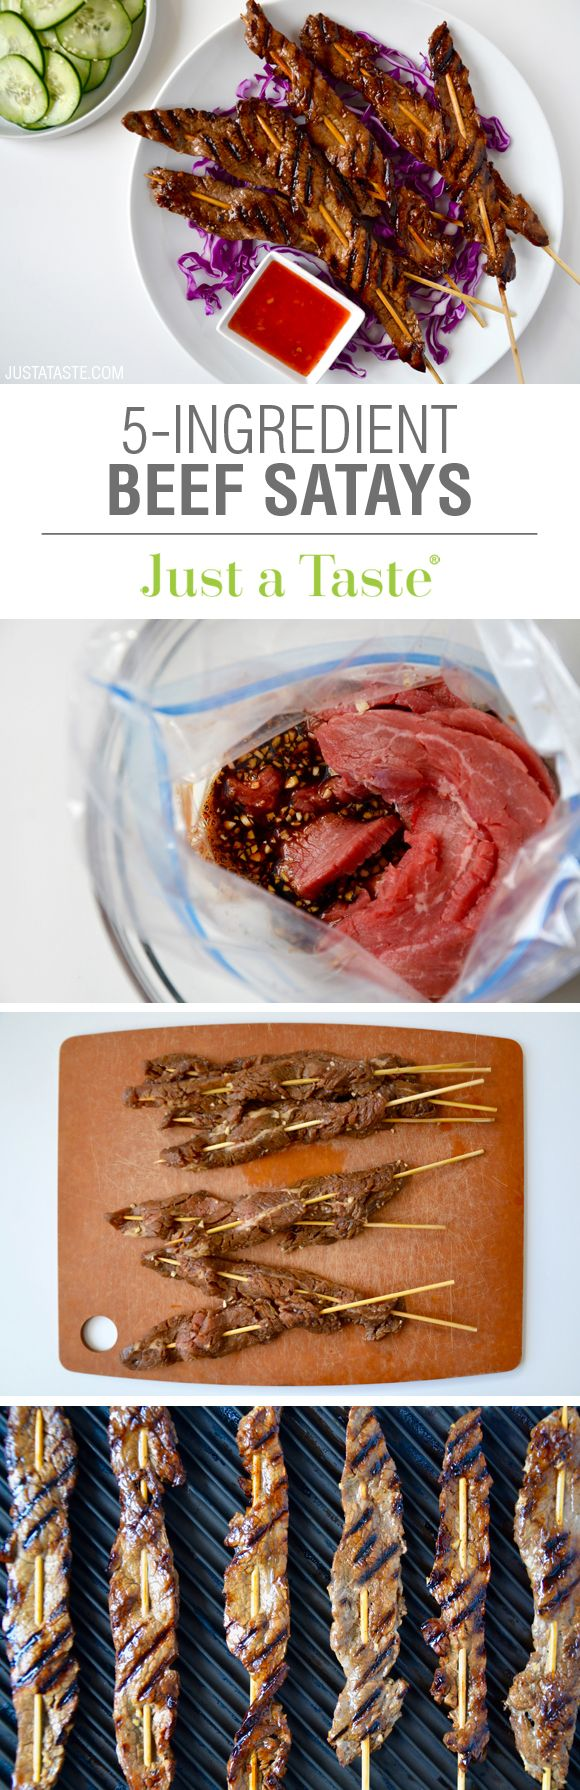 5-Ingredient Beef Satays recipe via justataste.com